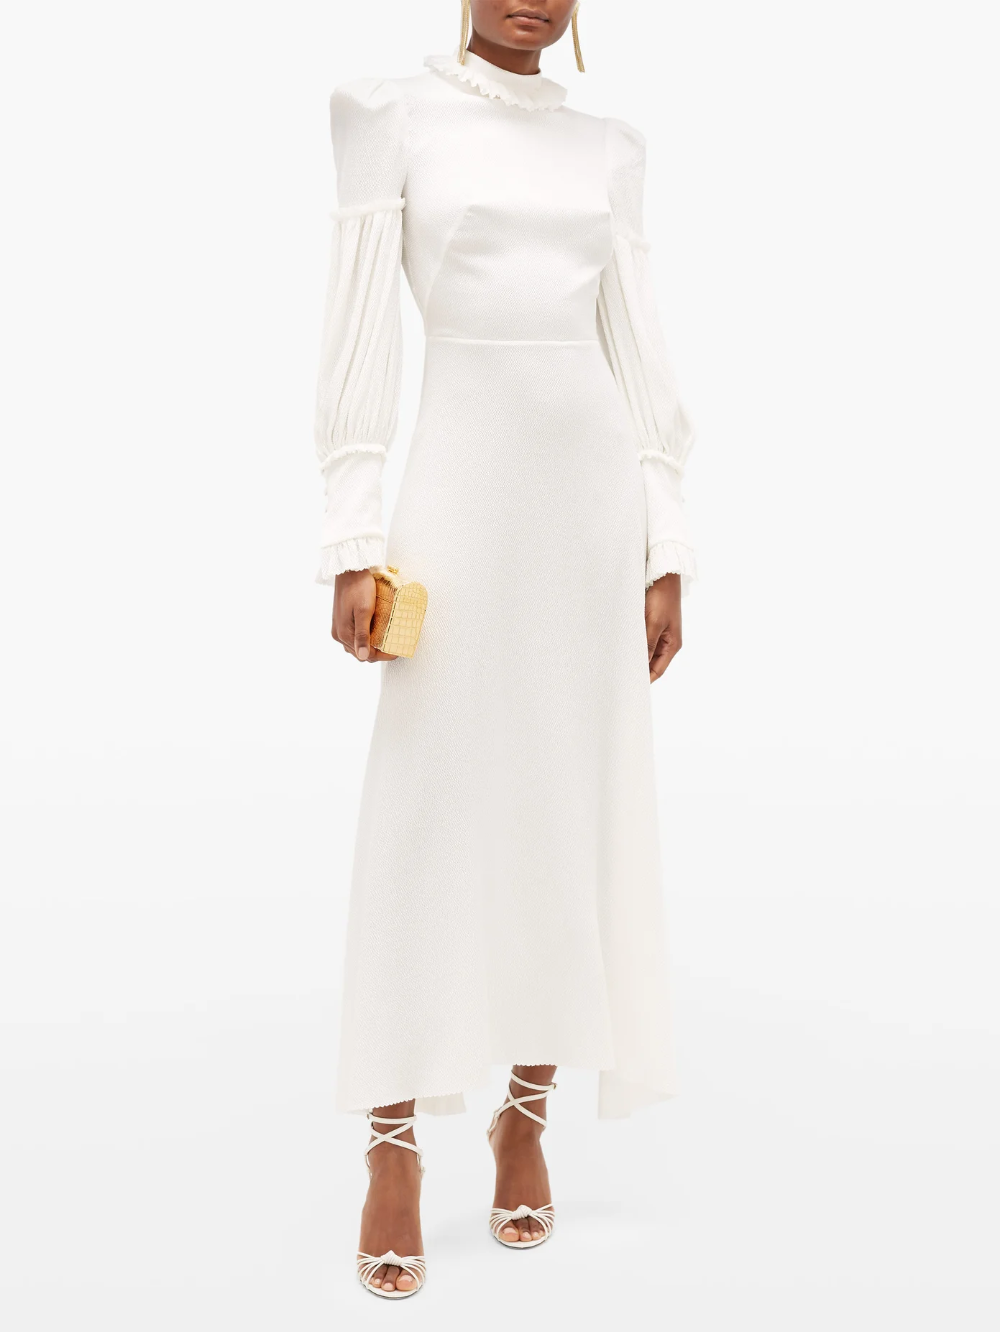 The Dahlia Hammered Silk Blend Dress The Vampire S Wife Matchesfashion Us Long Sleeve White Midi Dress White Maxi Dress Boho Long Sleeve Silk Dress [ 1332 x 1000 Pixel ]